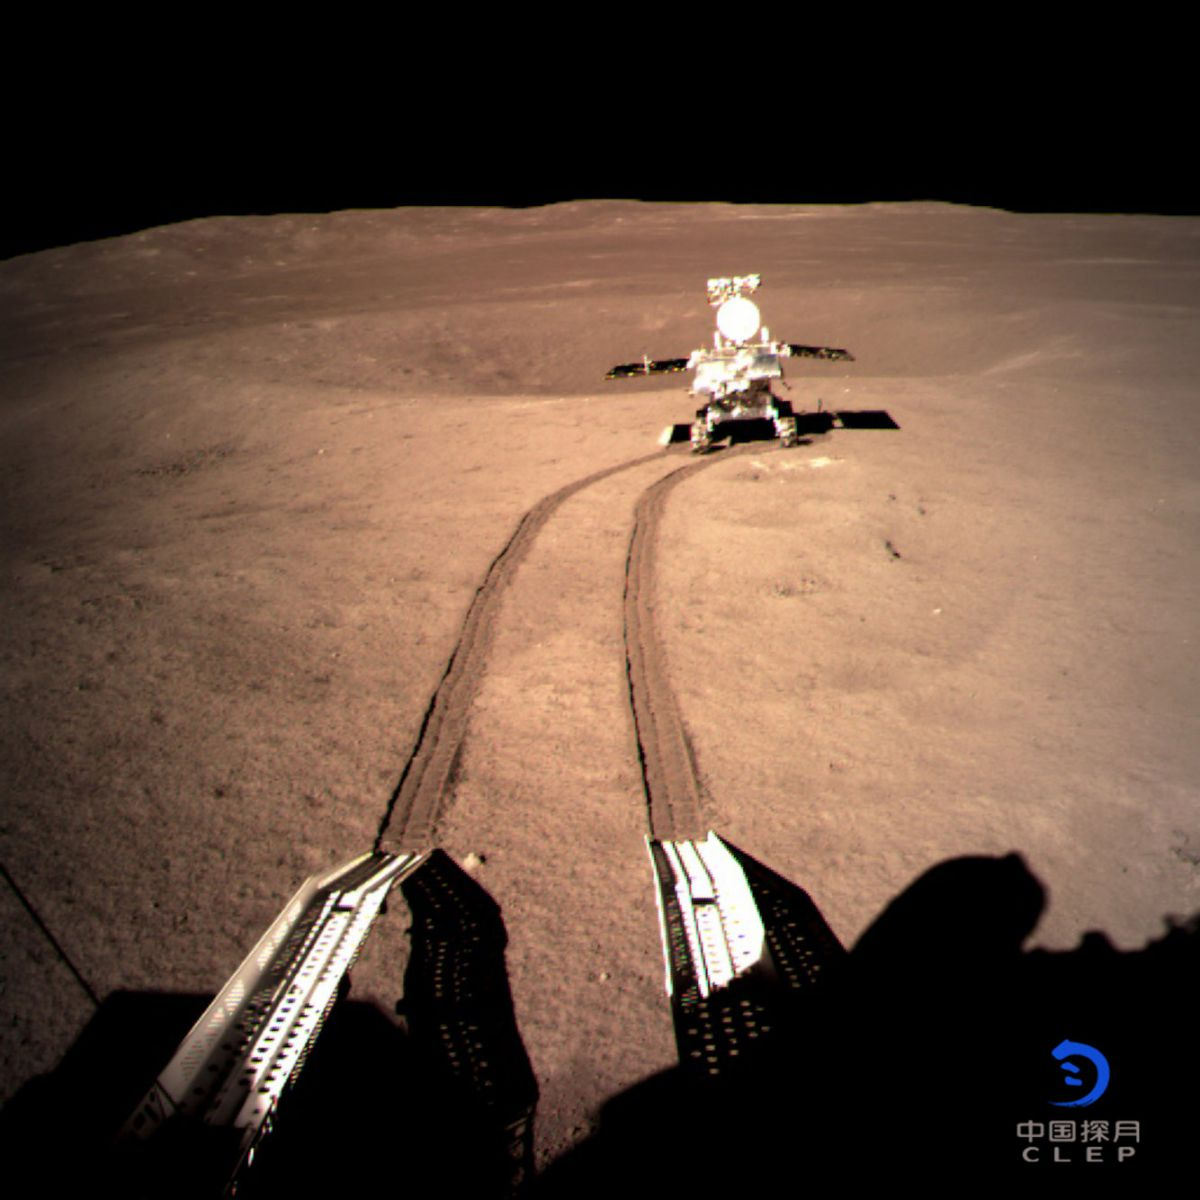 Successful space mission: China's objectives with the moon